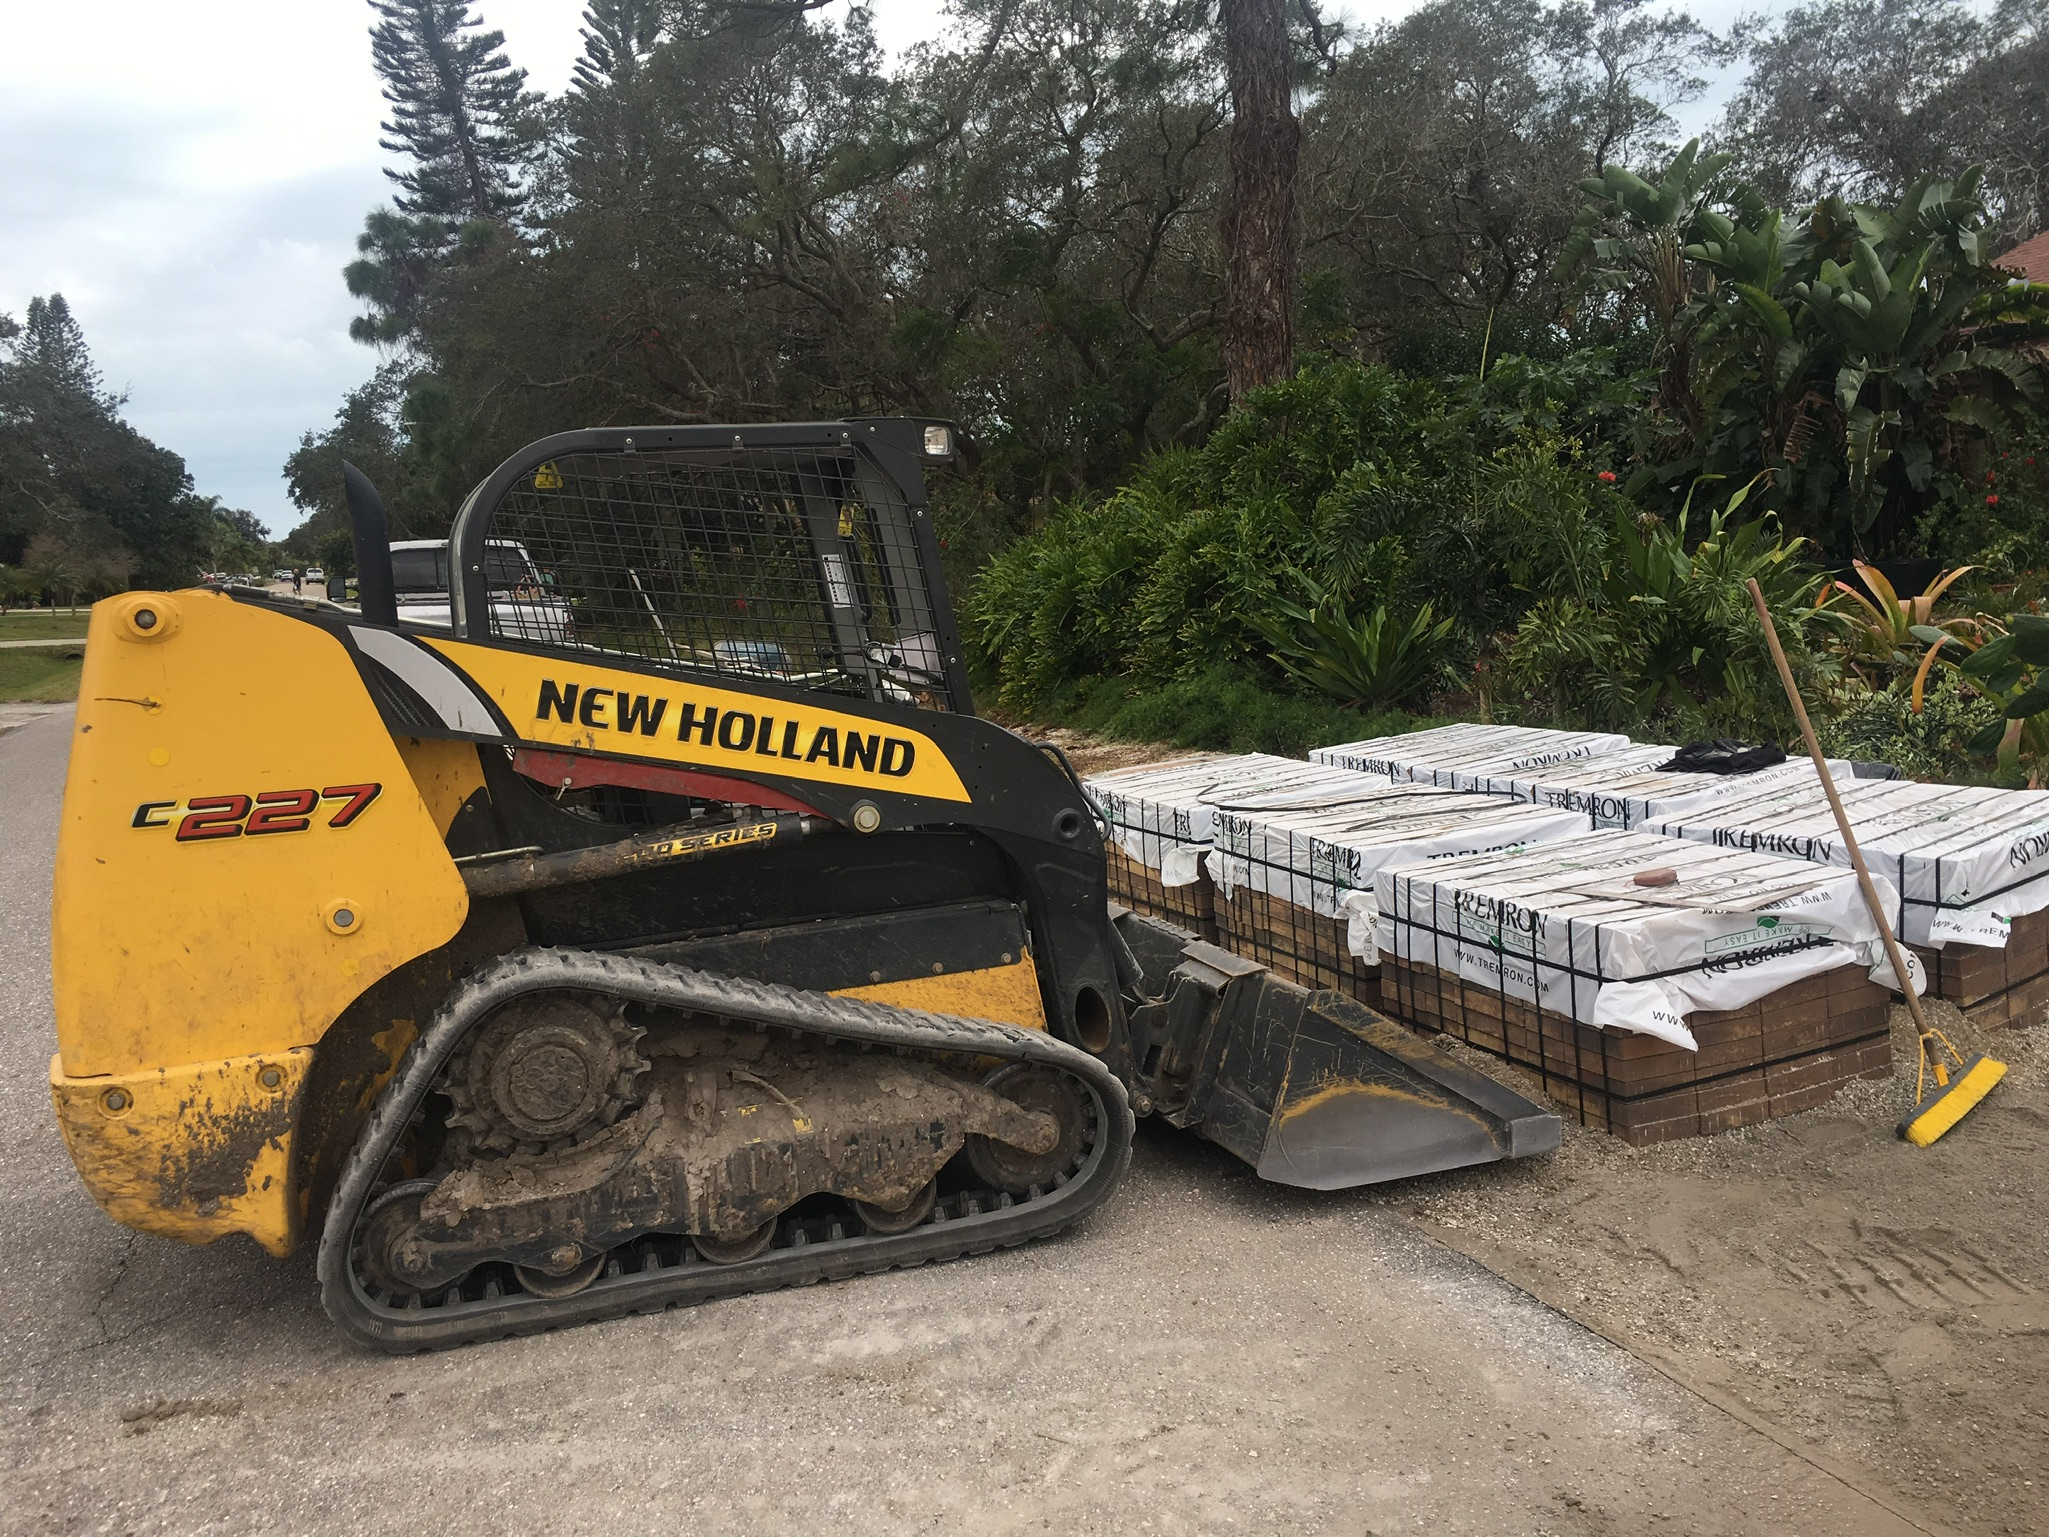 Equipment for loading heavy paver pallets